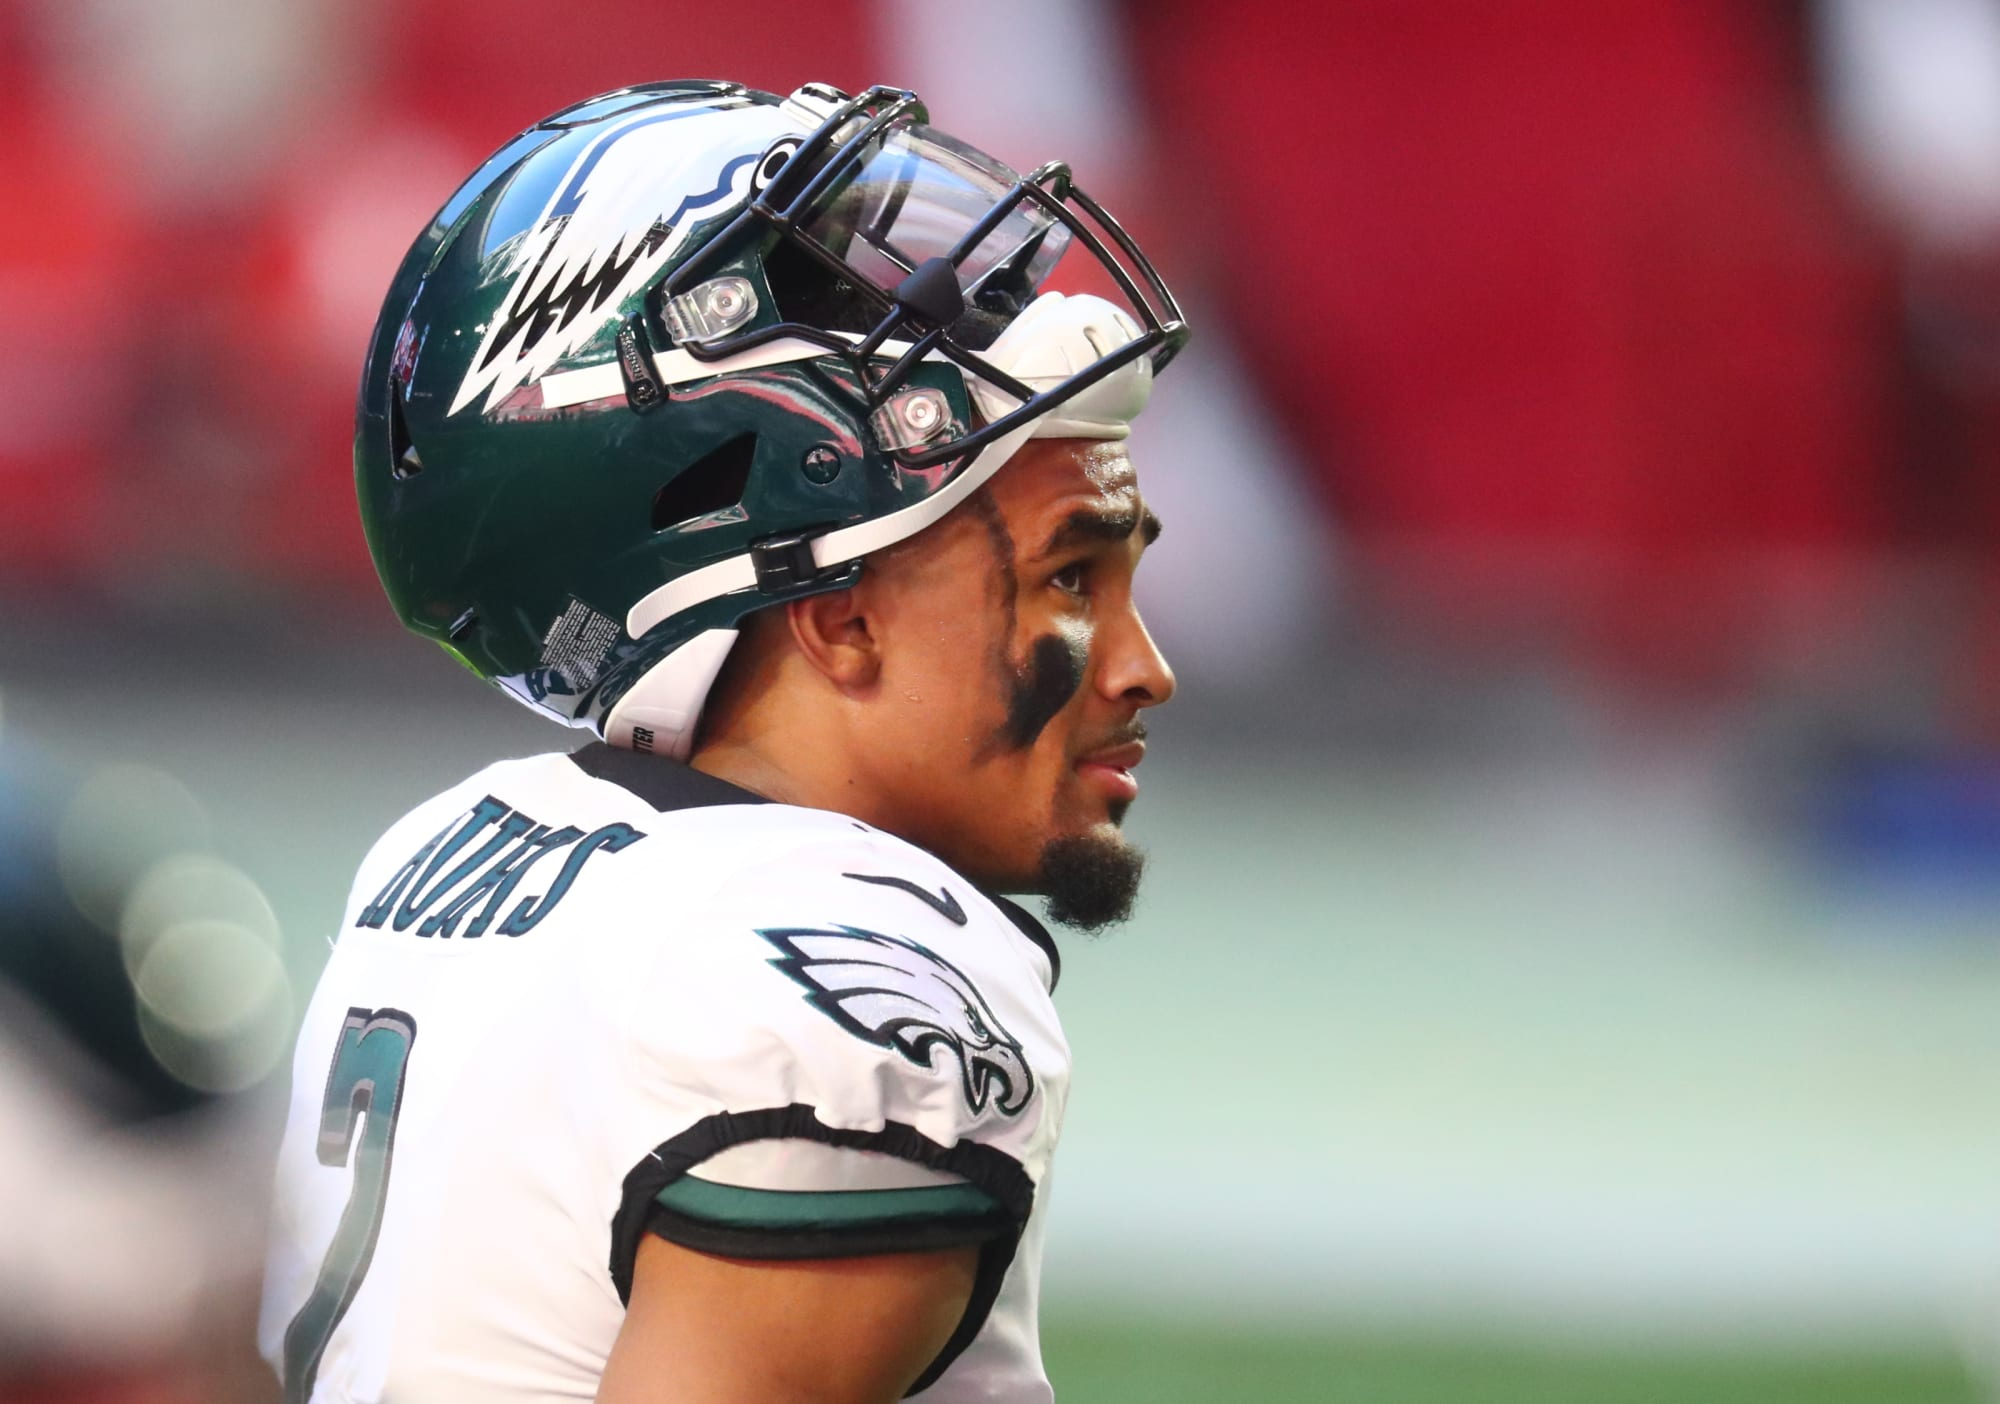 Eagles may not be done making moves at quarterback this offseason